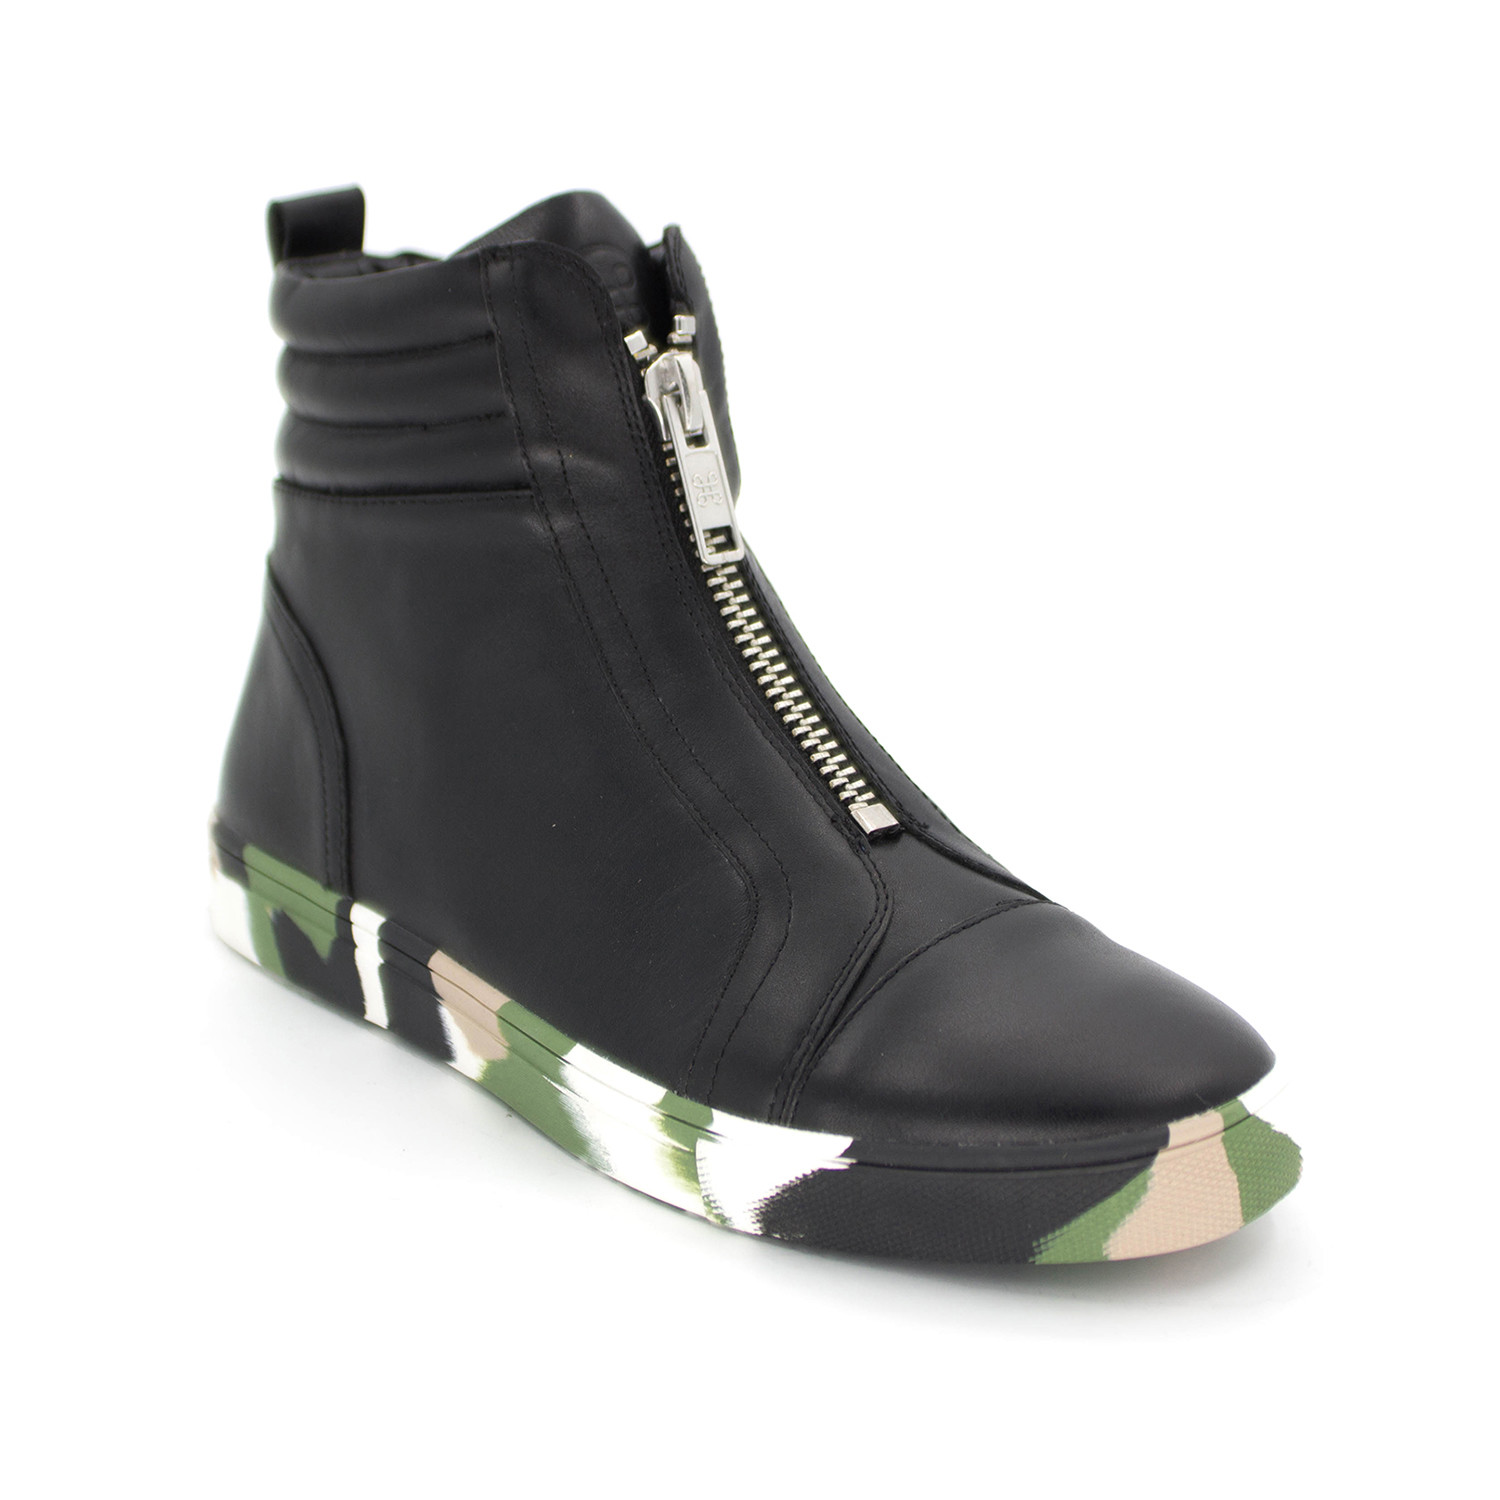 HIP AND BONE Leather Camo Zip Flyer High Top Sneaker MKTQrB3a6Z